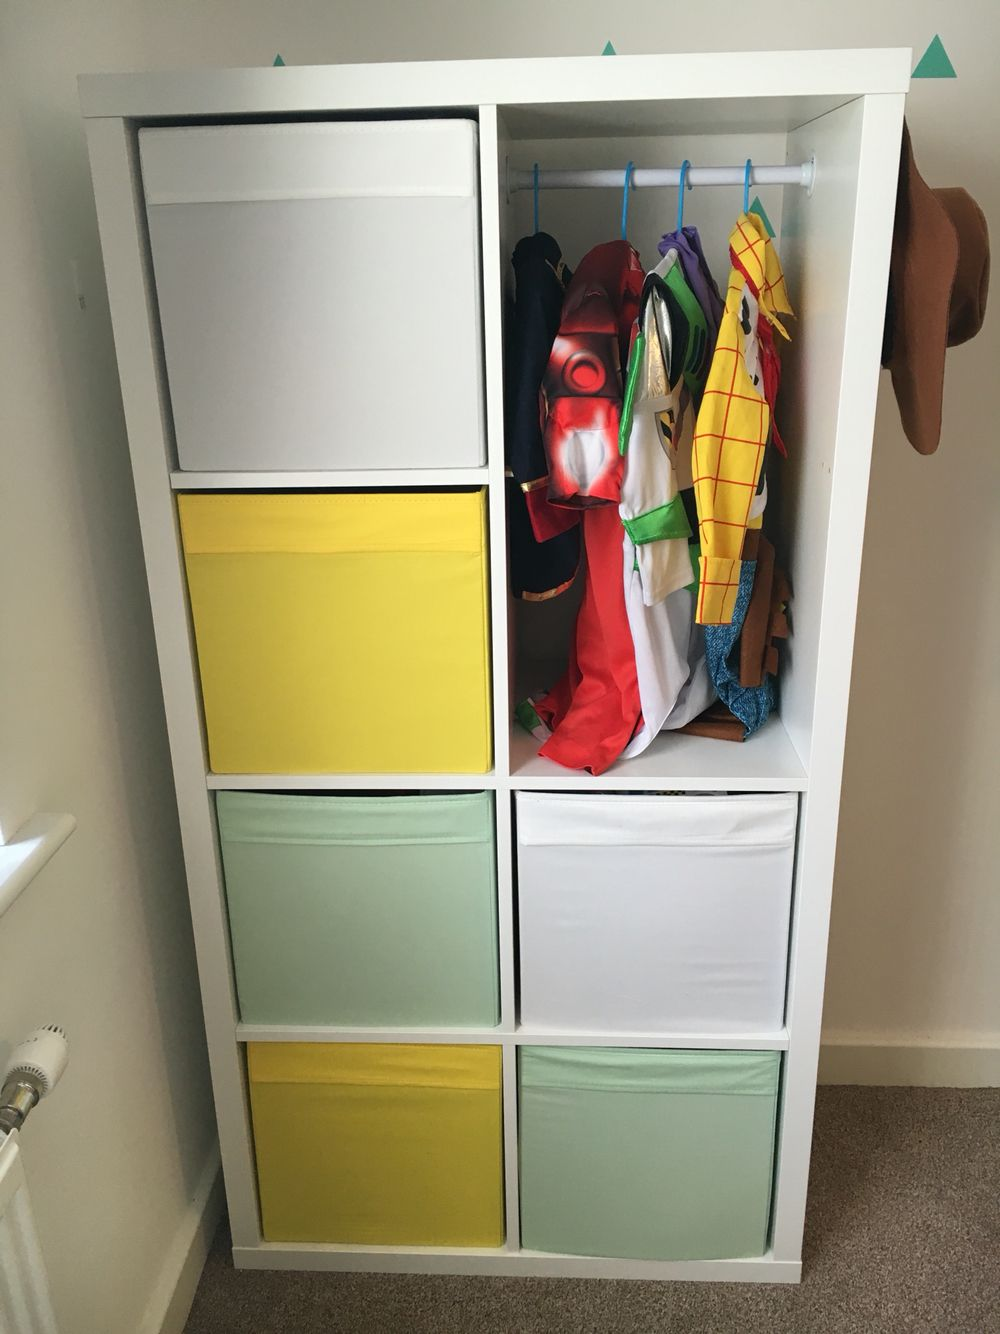 Space For Dressing Up Outfits Using IKEA Kallax Unit